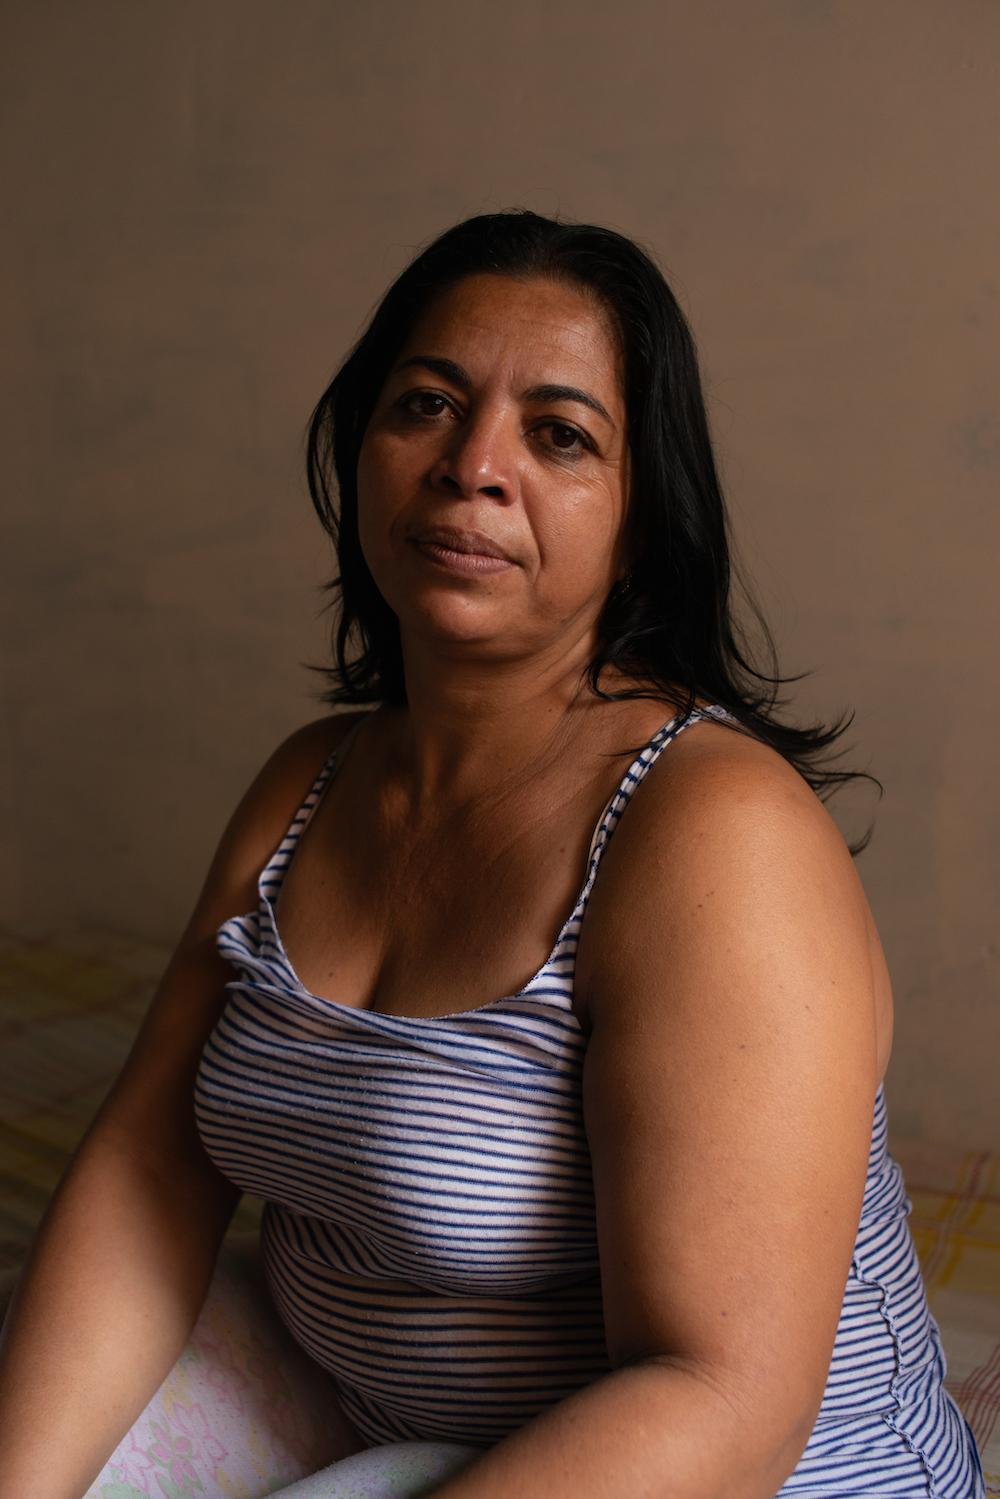 CARACAS, VENEZUELA - JUNE 2, 2019 Nancy poses for a portrait in her home in El Tamarindo, a barrio of Caracas. Her neighborhood 'territory' has been fought over by rival gangs for years. CREDIT: Lexi Parra